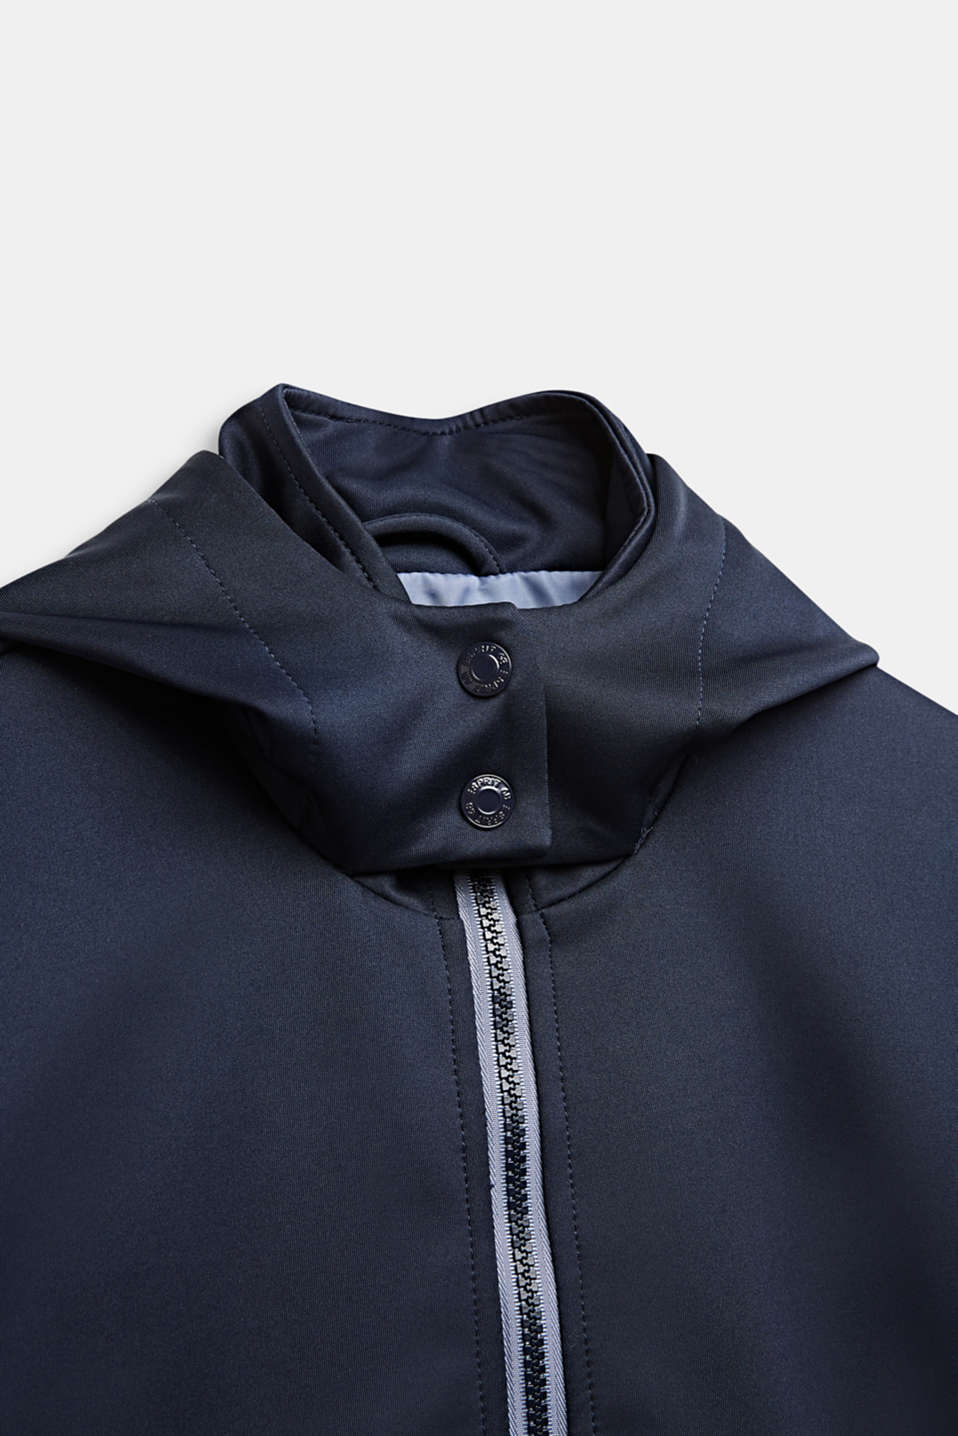 Softshell jacket with a hood, LCMIDNIGHT BLUE, detail image number 2